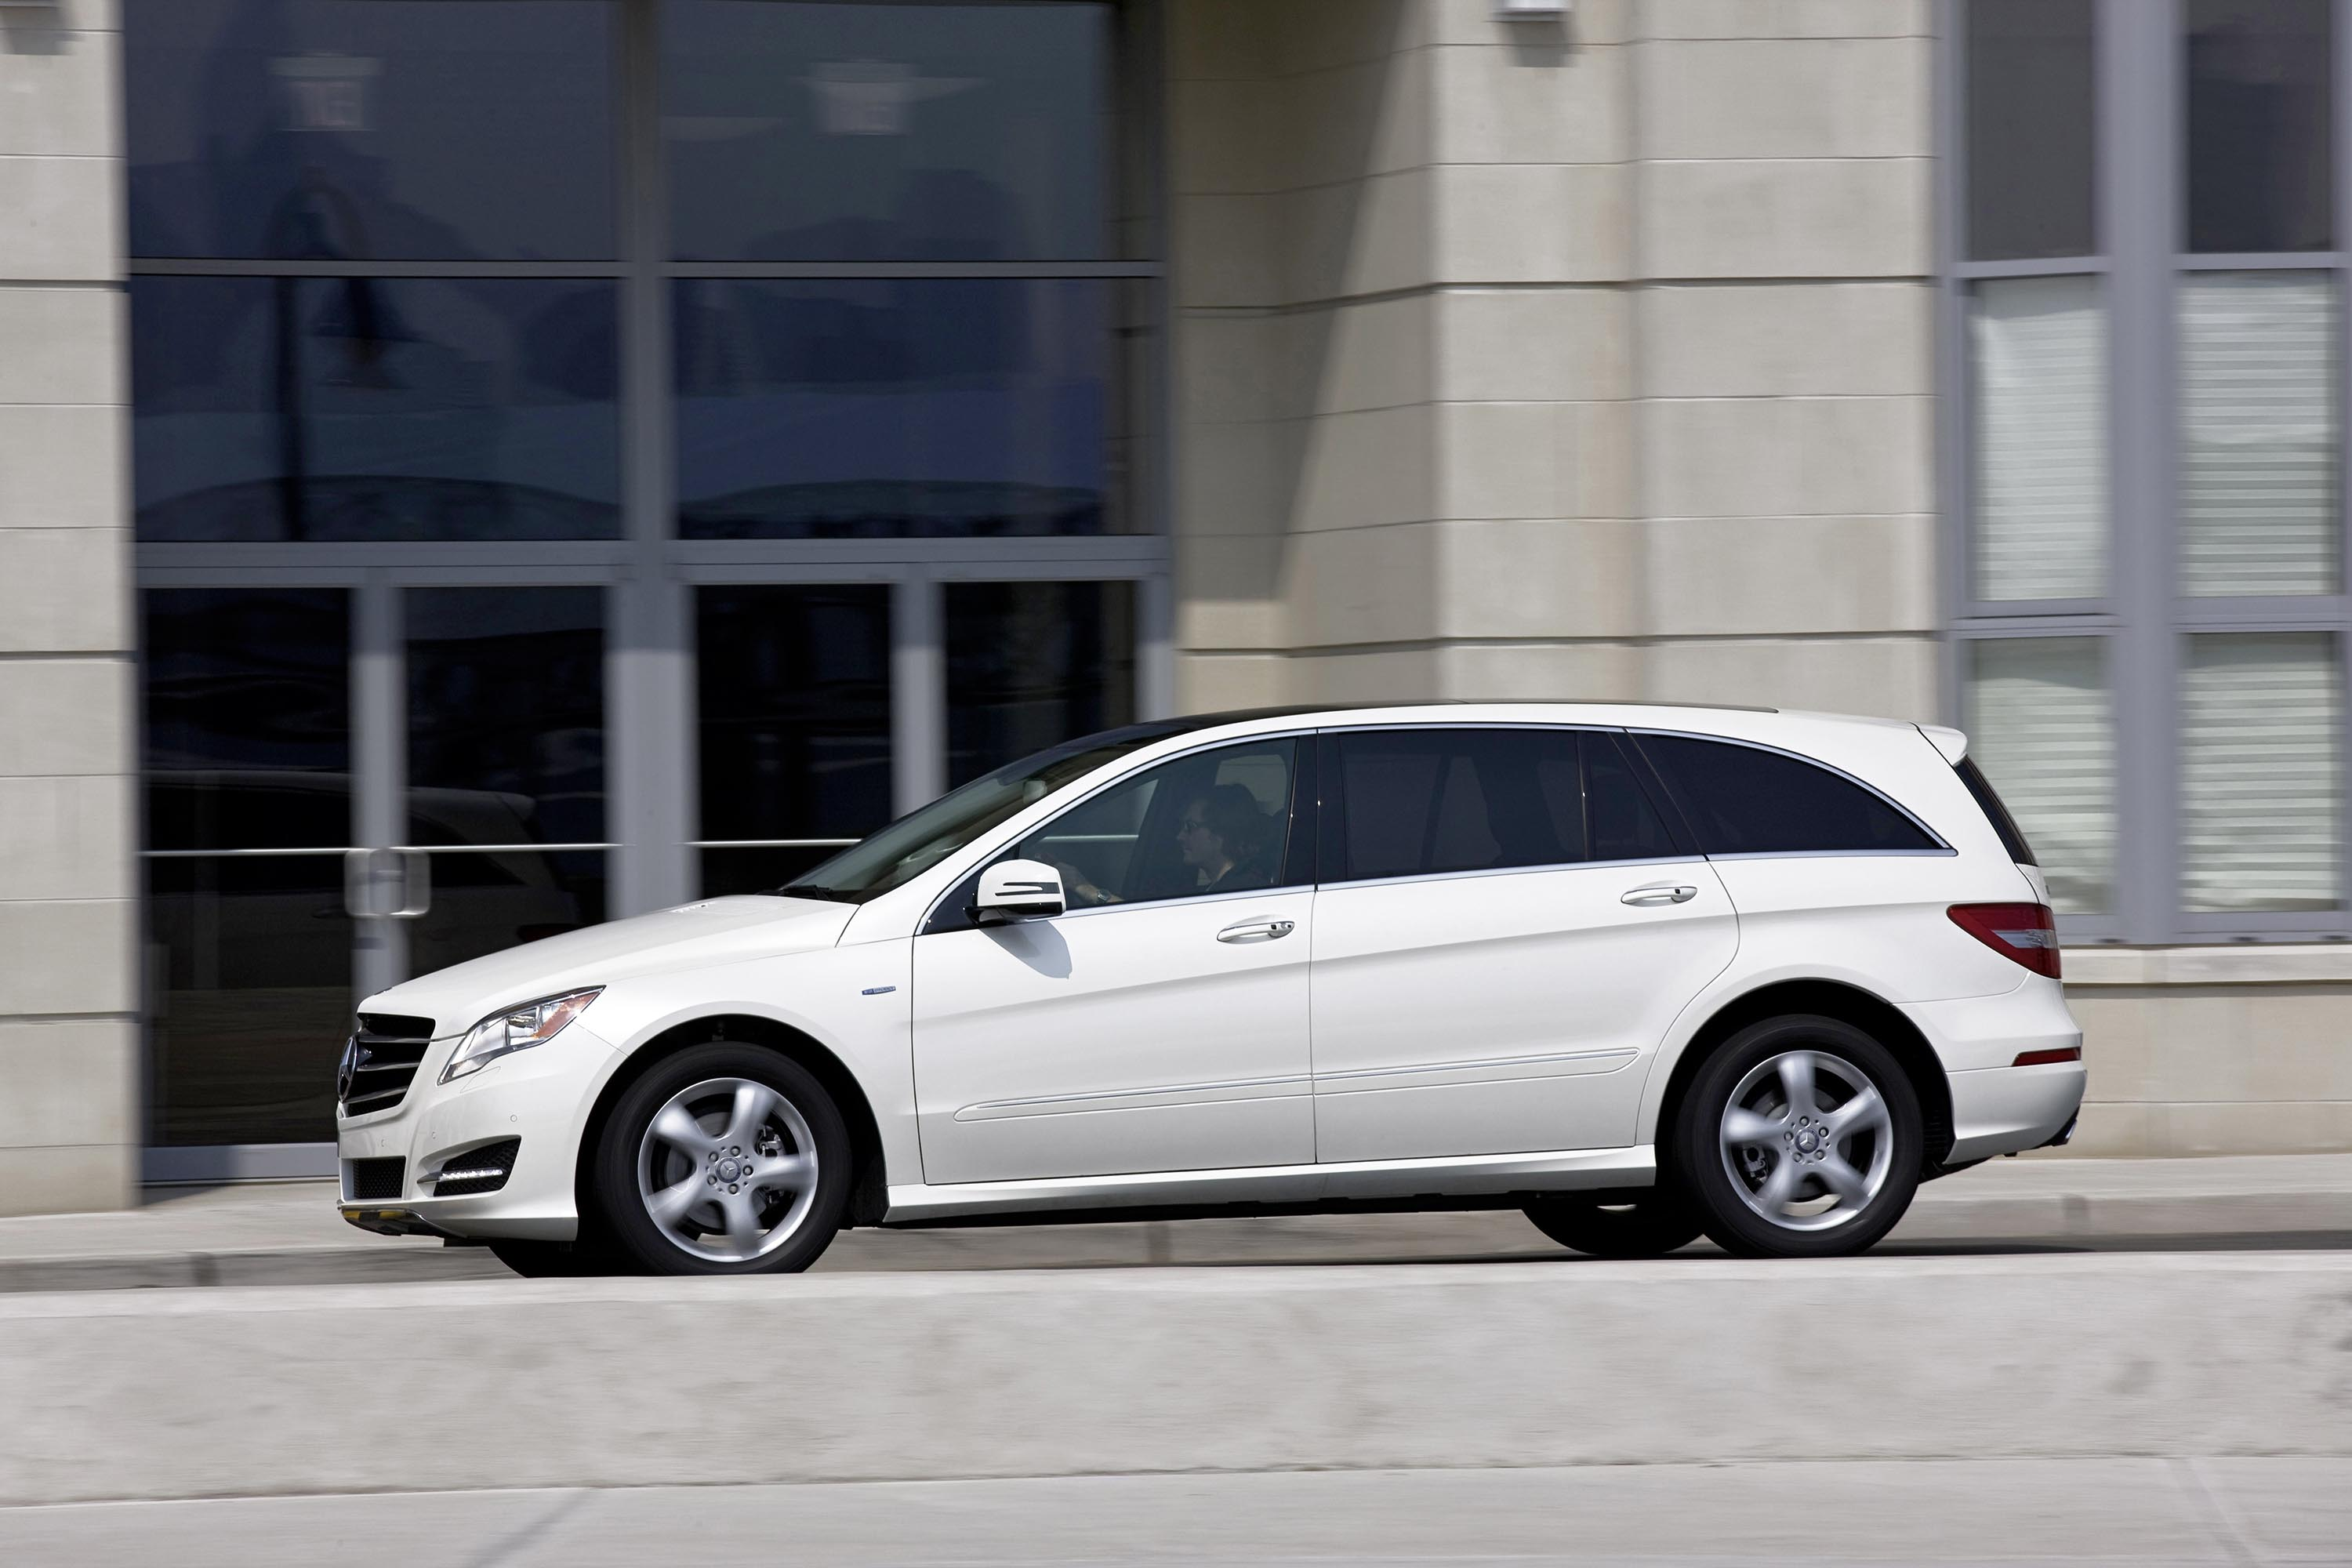 Mercedes Benz Minivan >> Mercedes-Benz R-Class: AM General to produce China-only model | Between the Axles